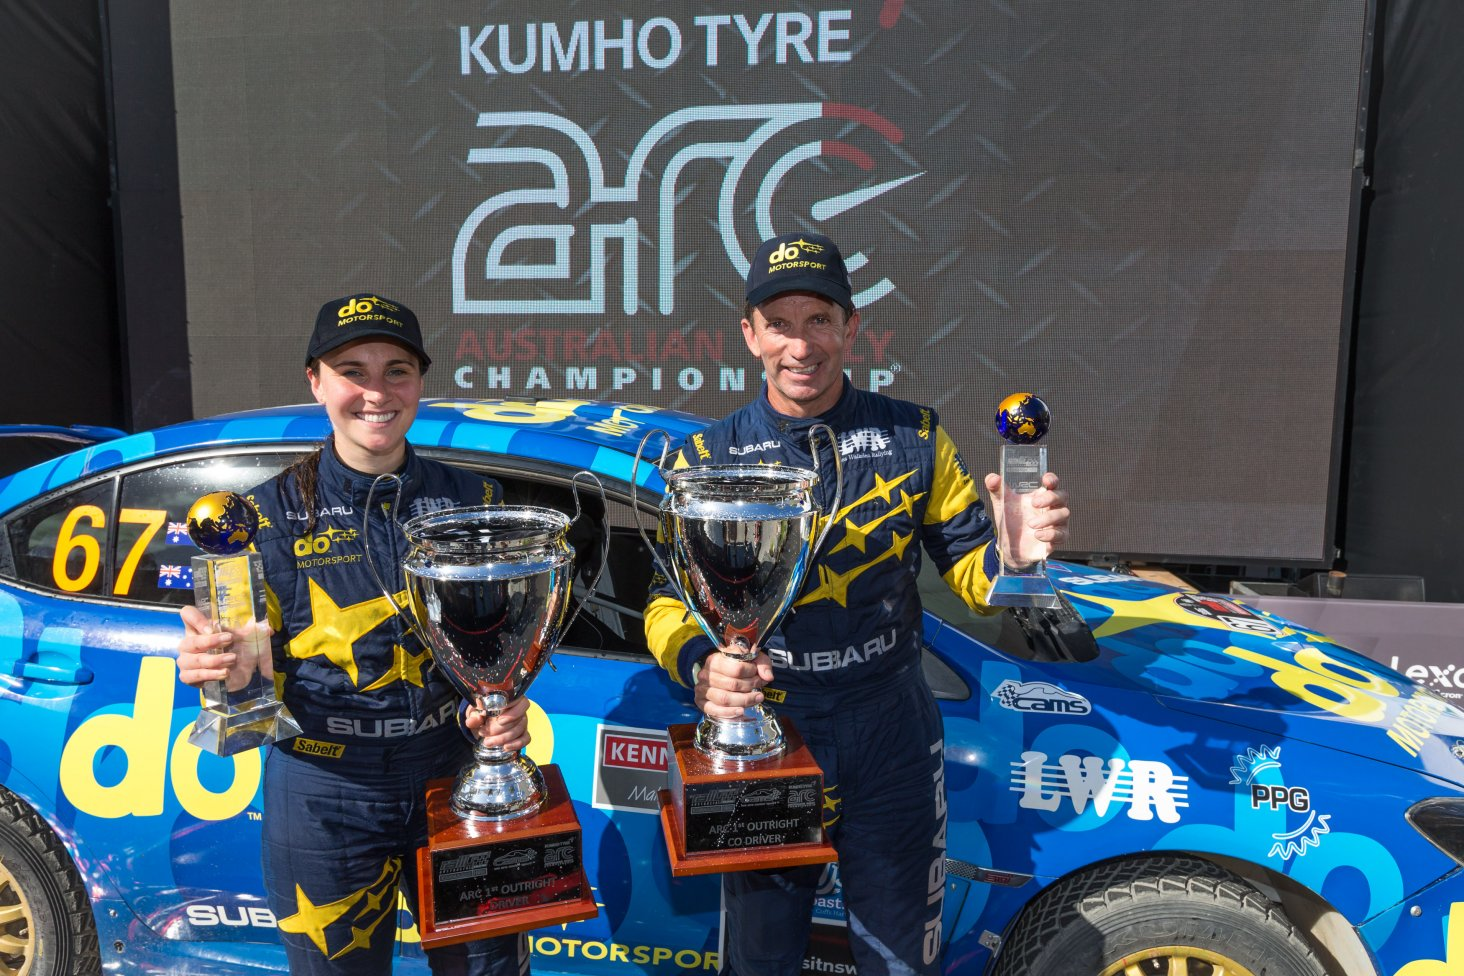 Australians Molly Taylor and co-driver Bill Hayes won the Australian Rally Championhsip in their All-Wheel Drive Group N production class Subaru WRX STi NR4 yesterday. PHOTO CREDIT: SUBARU AUSTRALIA